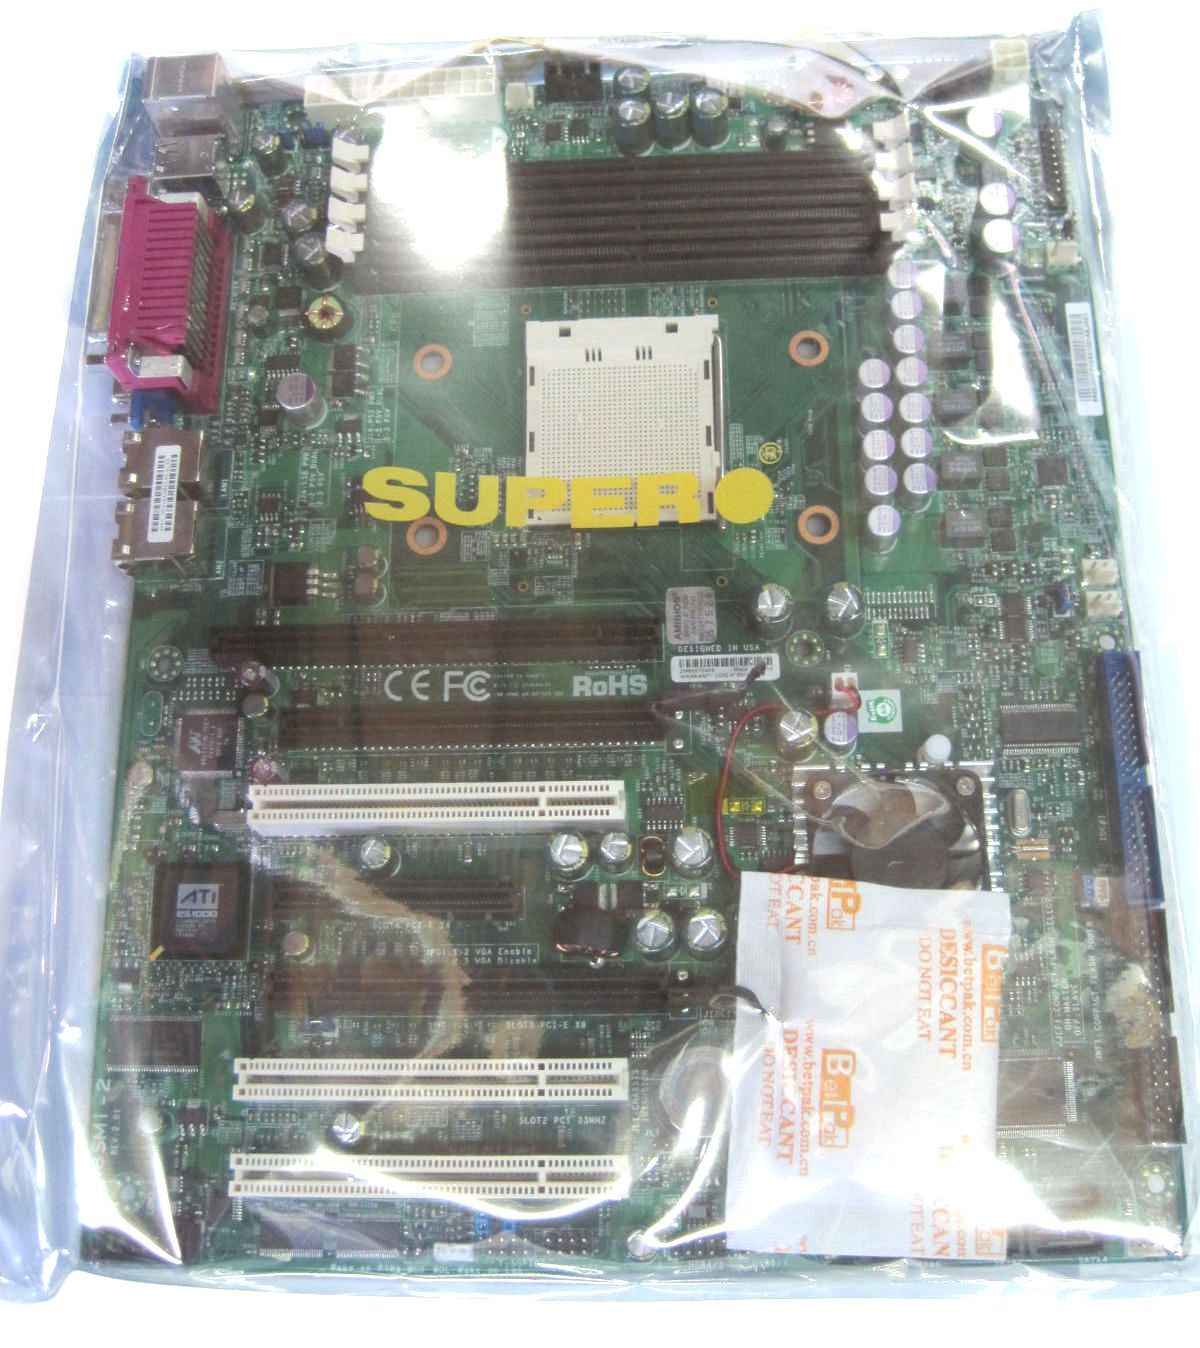 Supermicro H8SMI-2 DDR2 ATX nForce Pro 3600 940-pin AM2 Socket Server Motherboard